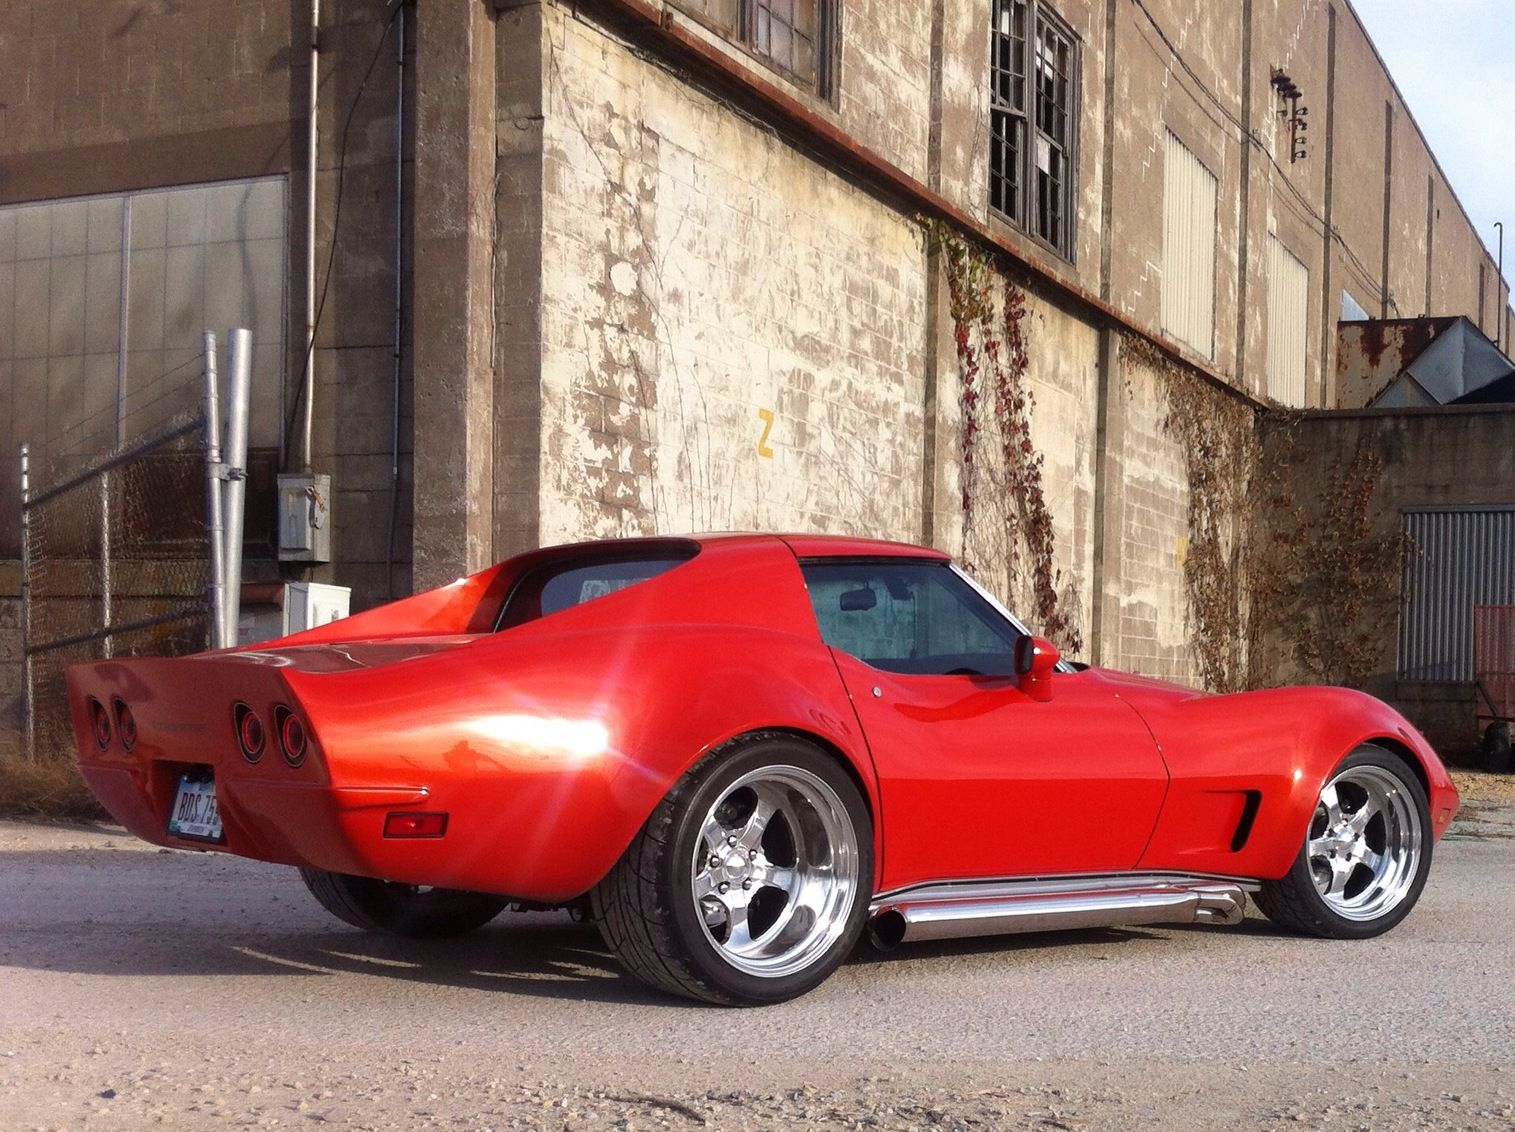 76 Corvette Stingray With Rear End Conversion Flares And Paint By Custom Image Corvettes Ls1 Richmond Six Speed Droomauto S